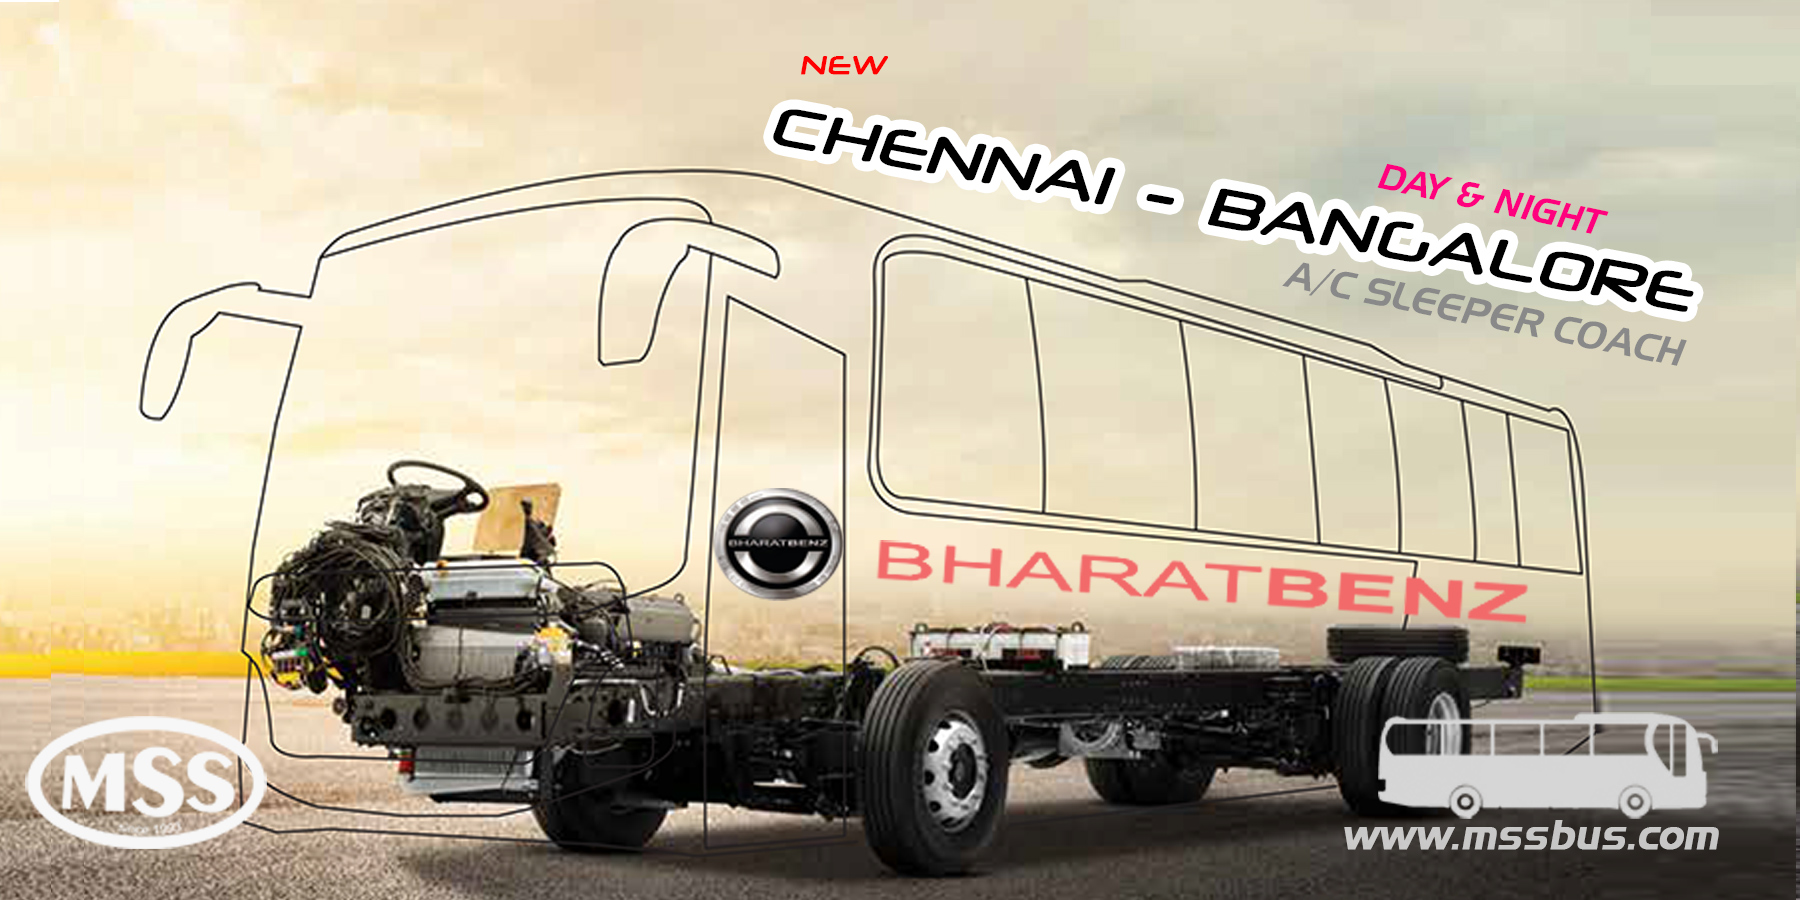 Starting brand NEW Bharath BENZ A/C Sleeper bus